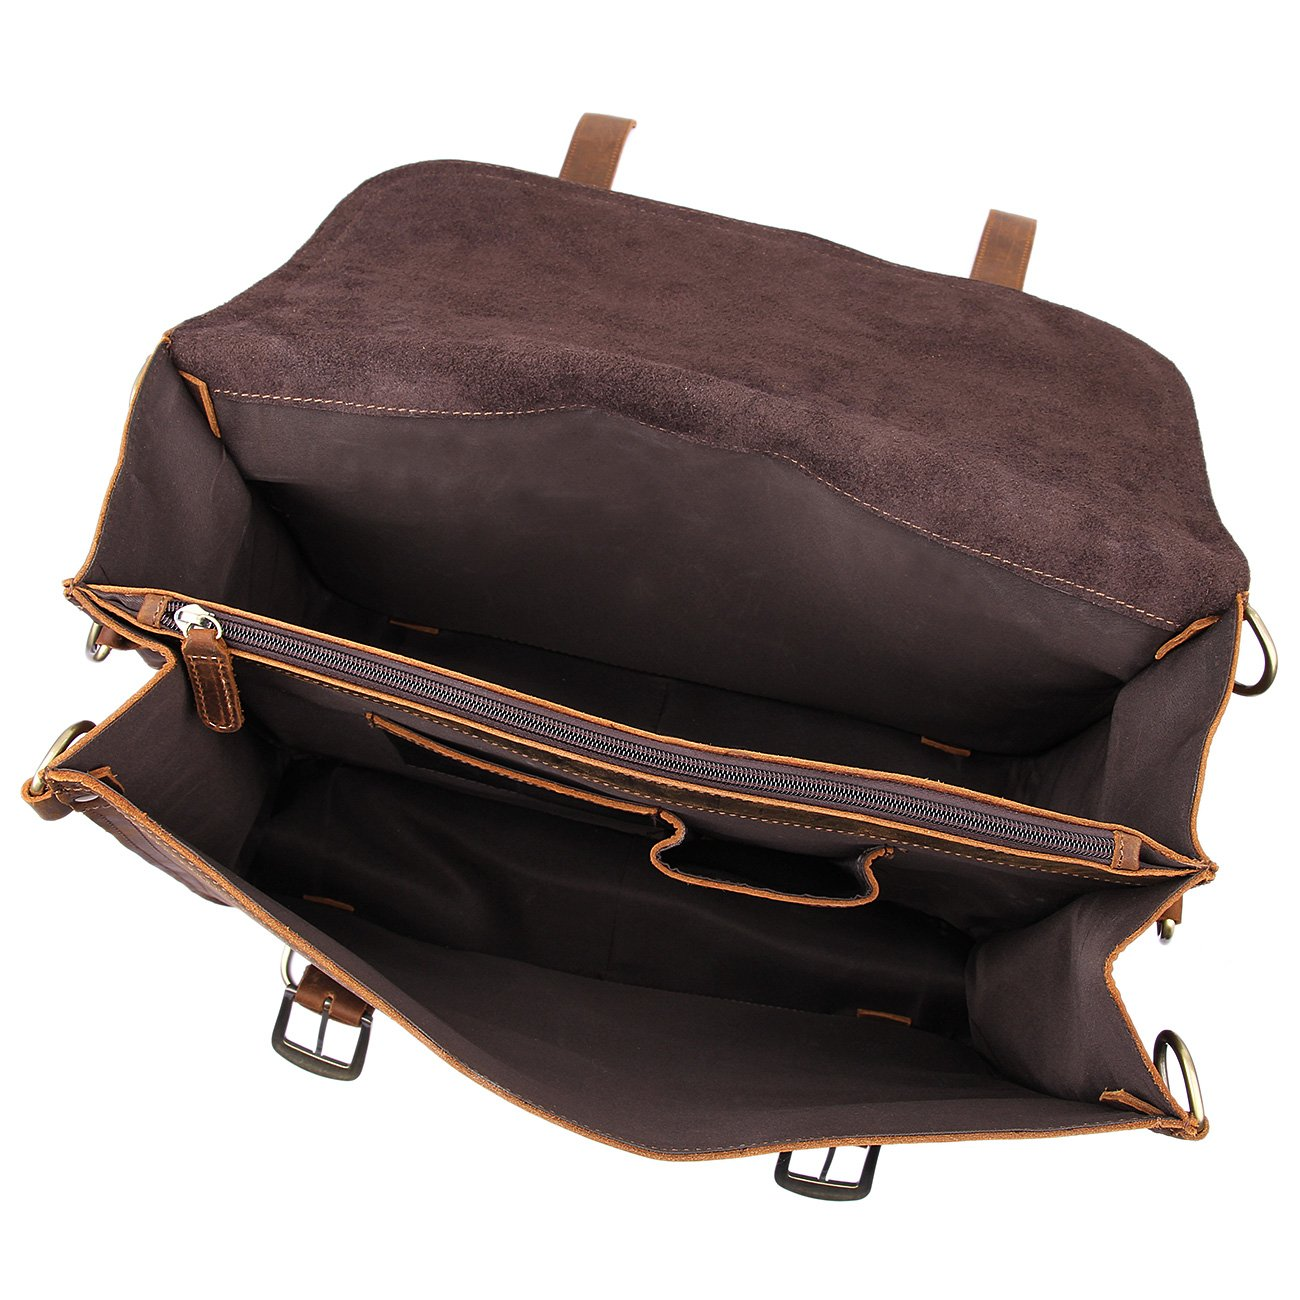 Texbo Men's Thick Cowhide Leather Messenger Bag, 16.5'' Laptop Briefcase by Texbo (Image #3)